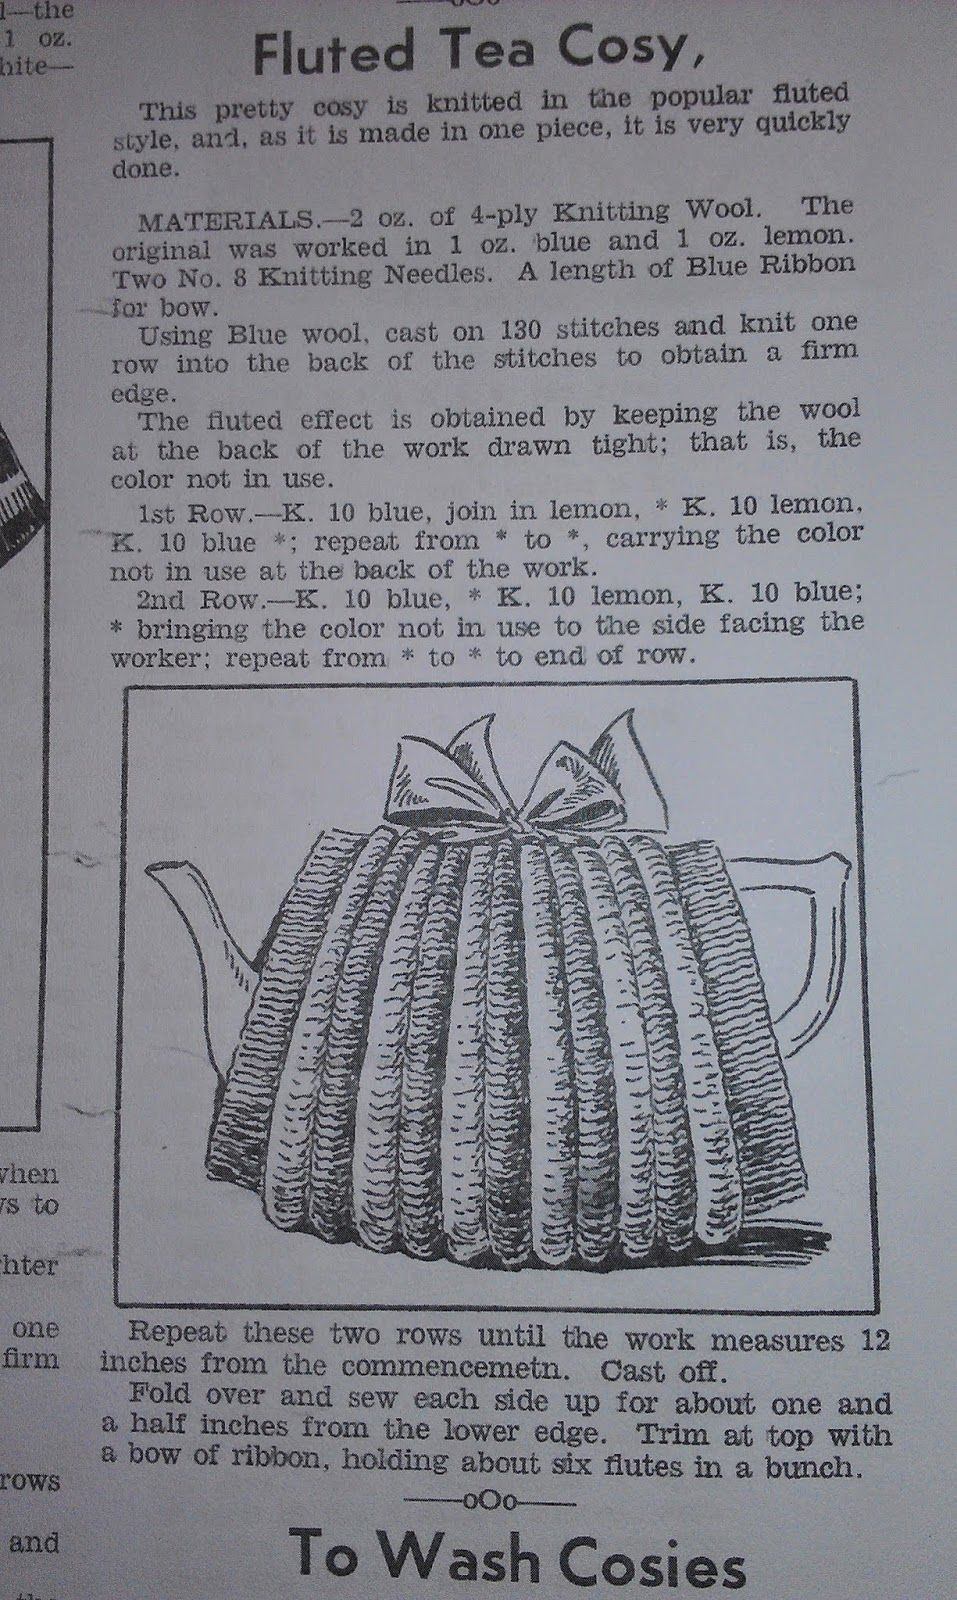 Craft a cure for cancer free tea cosy pattern vintage tea cosy craft a cure for cancer free tea cosy pattern vintage tea cosy patterns bankloansurffo Images